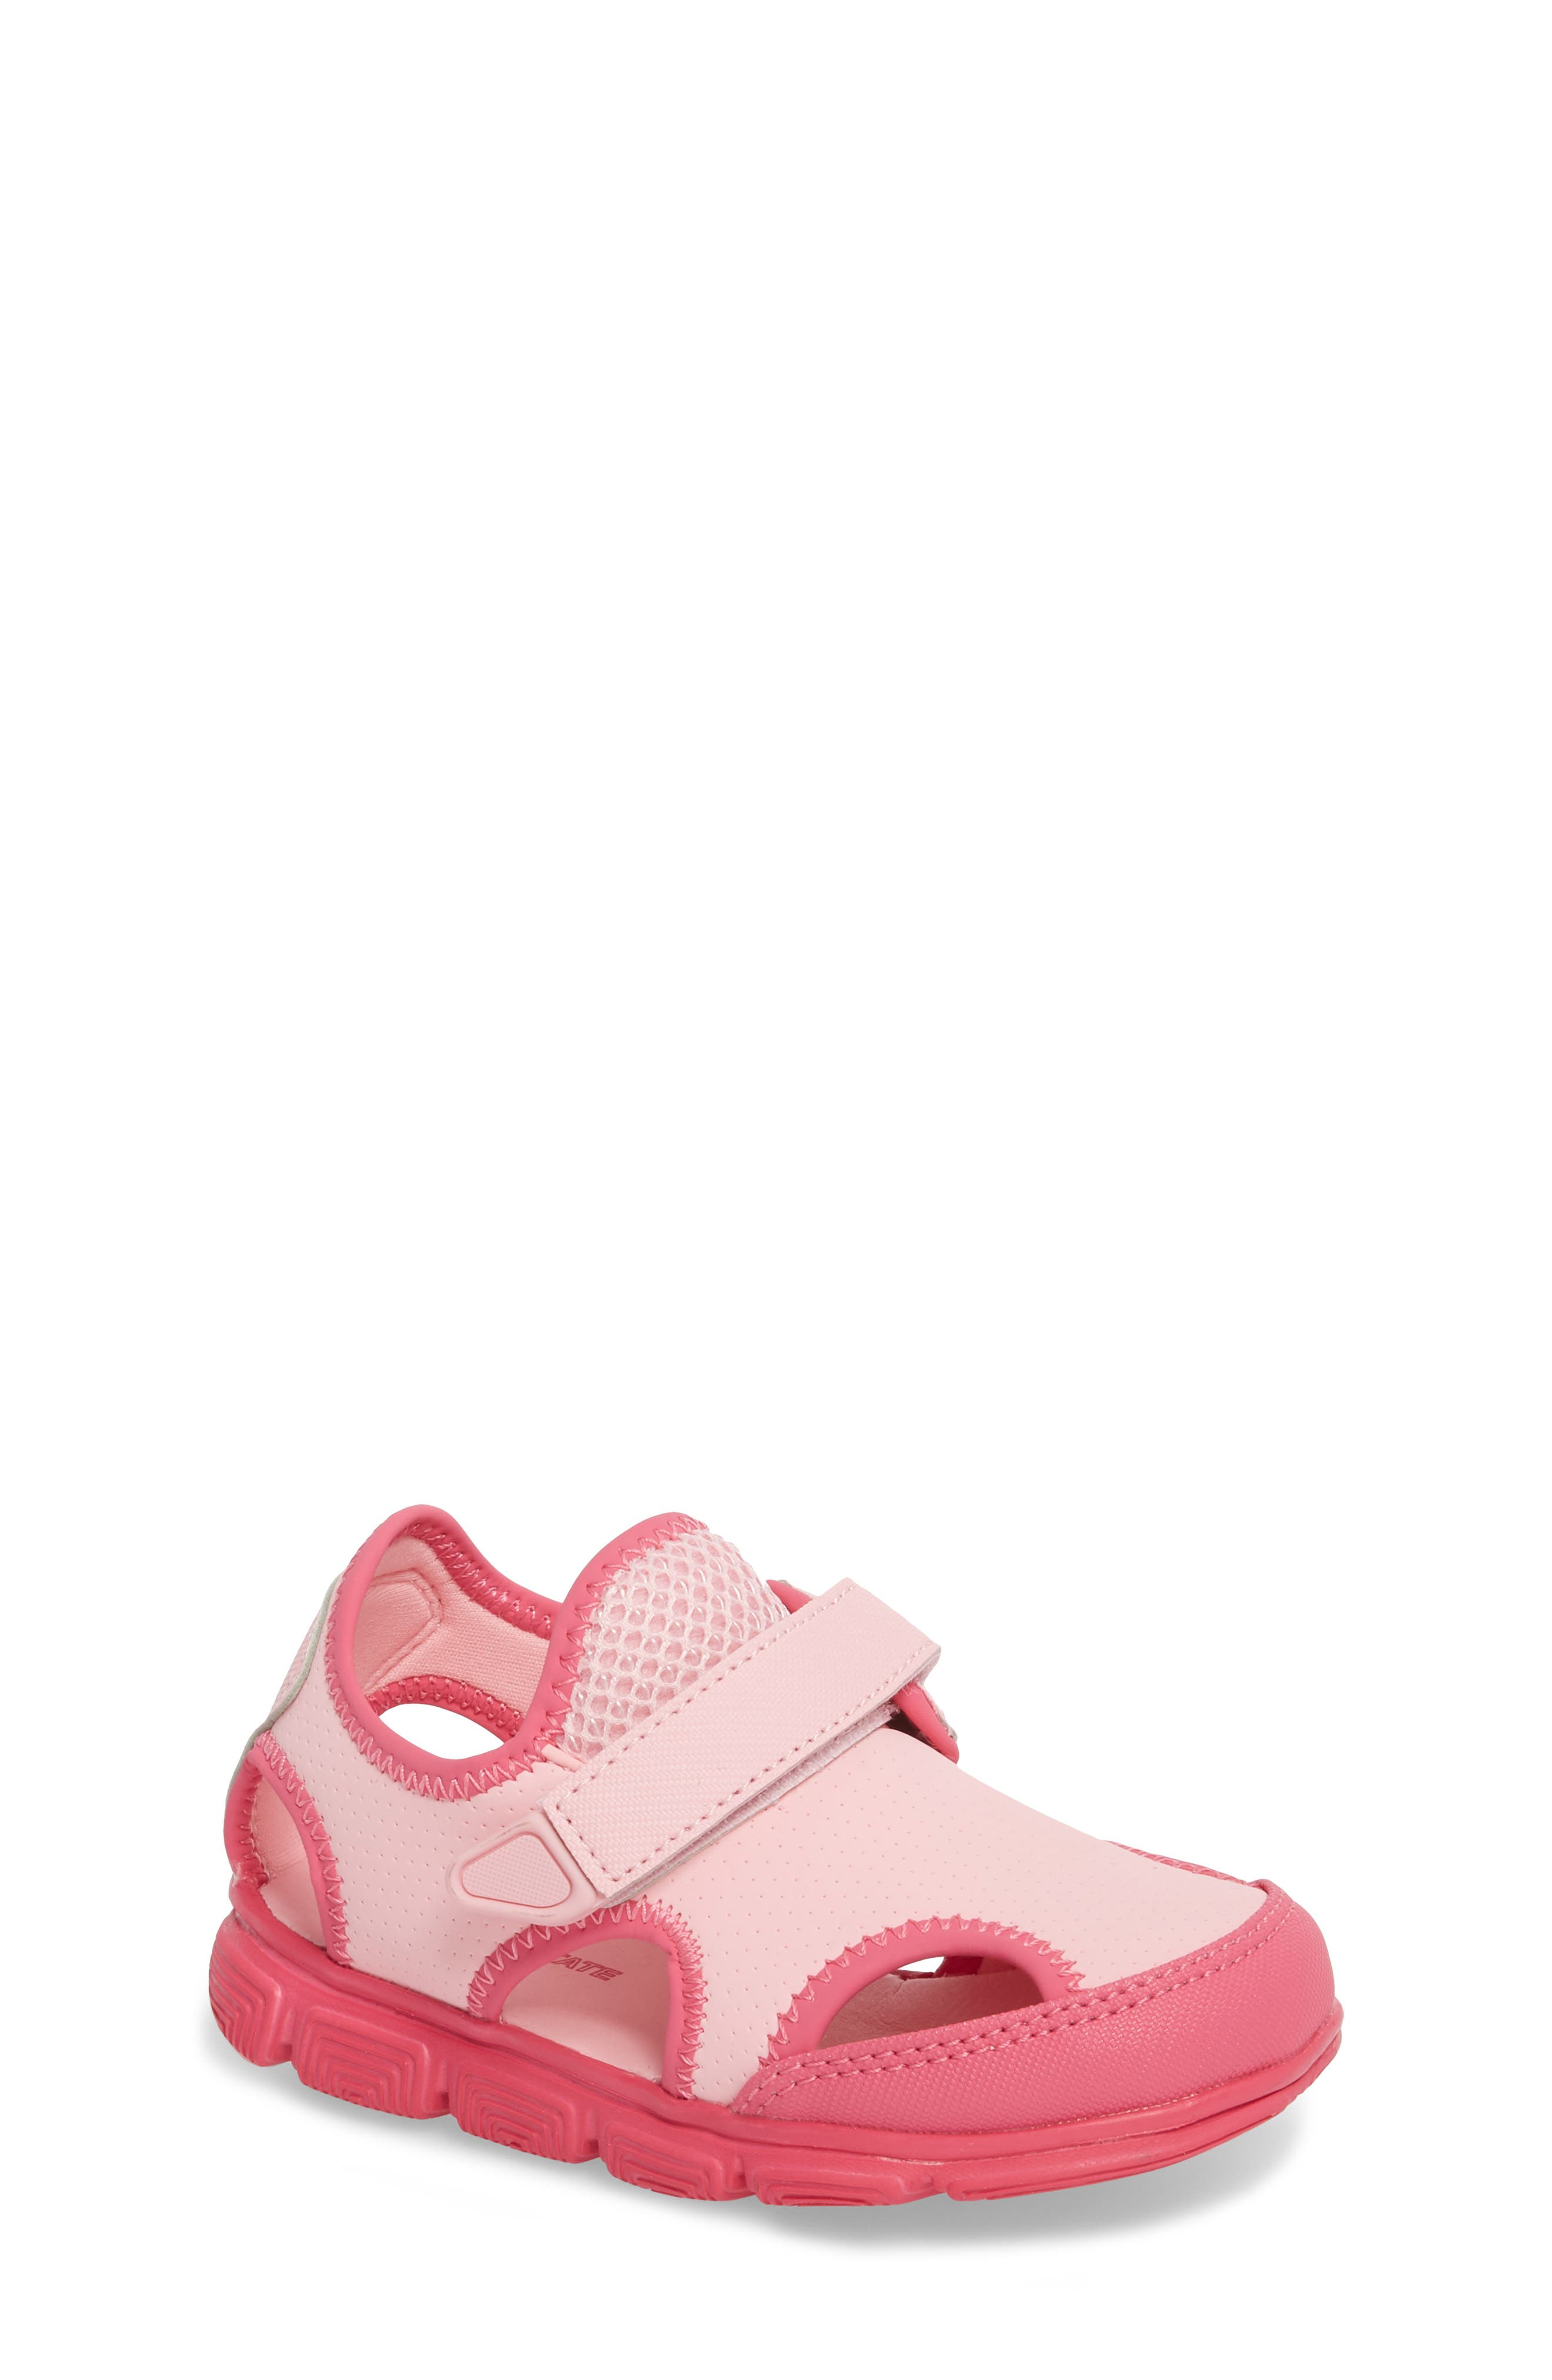 Sophie Water Sandal,                             Main thumbnail 1, color,                             Pink/ Dark Pink